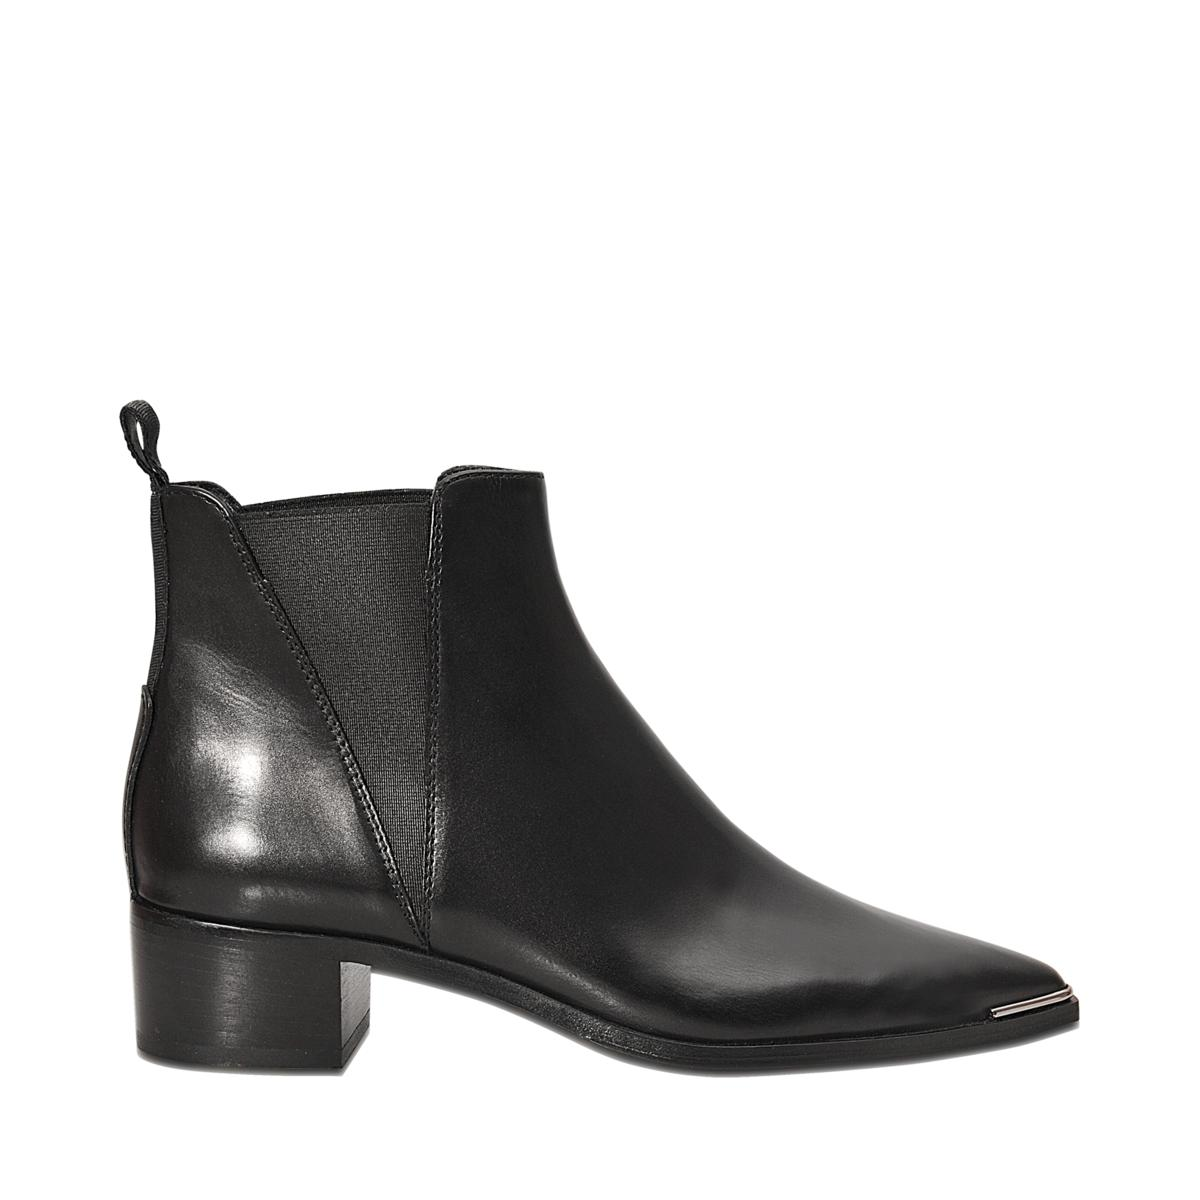 Acne Studios Exni Flat-soled Boots, Thick heels and Ankle Shoes Fashion Women's Shoes